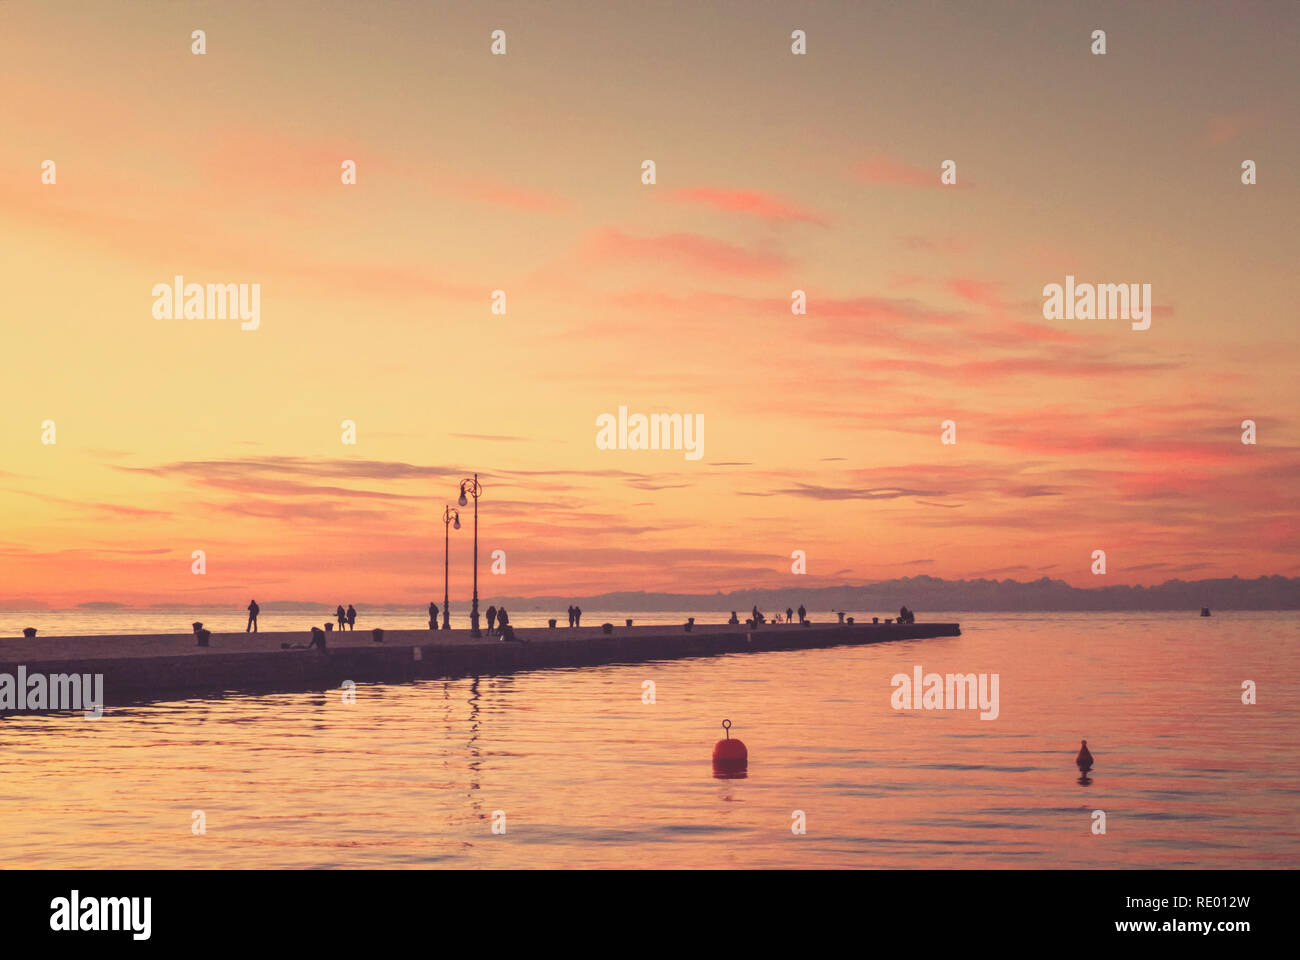 Trieste. Sunset over the Molo Audace. - Stock Image